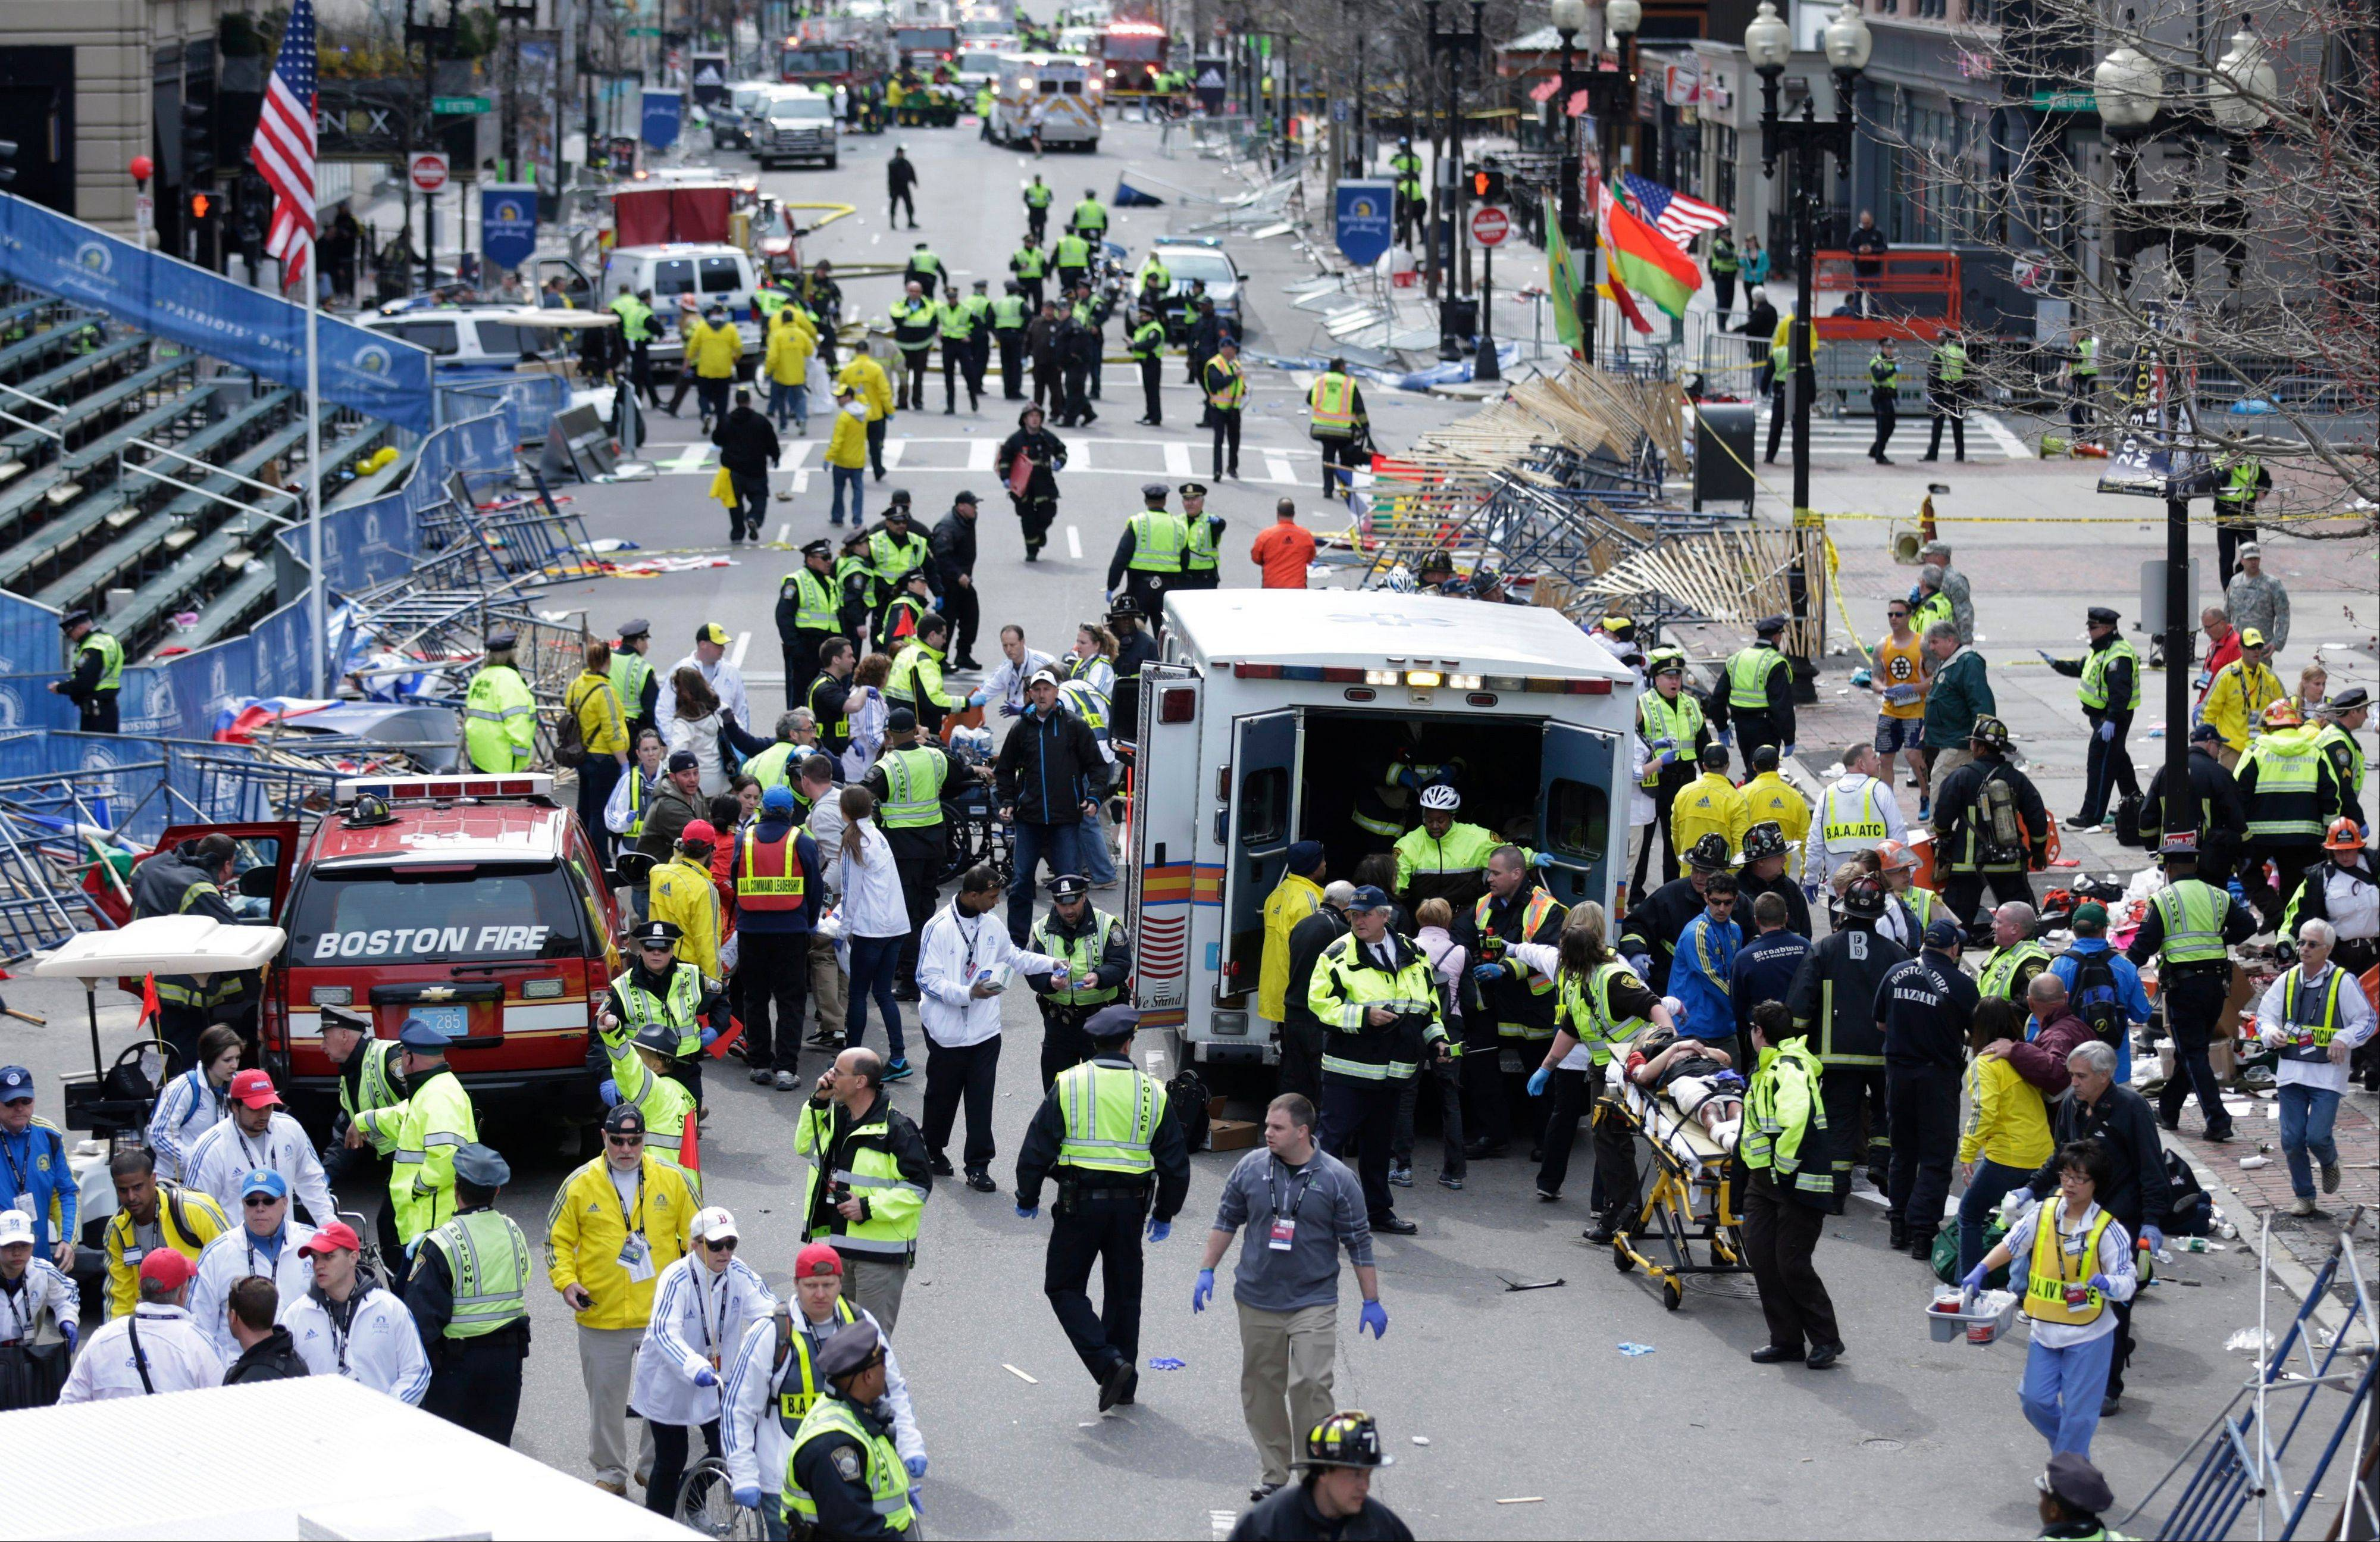 This April 15, 2013 file photo shows medical workers aiding injured people at the finish line of the 2013 Boston Marathon in Boston following an explosion. If the Obama administration seeks the death penalty against Boston Marathon bombing suspect Dzhokhar Tsarnaev, it would face a long, difficult legal battle.